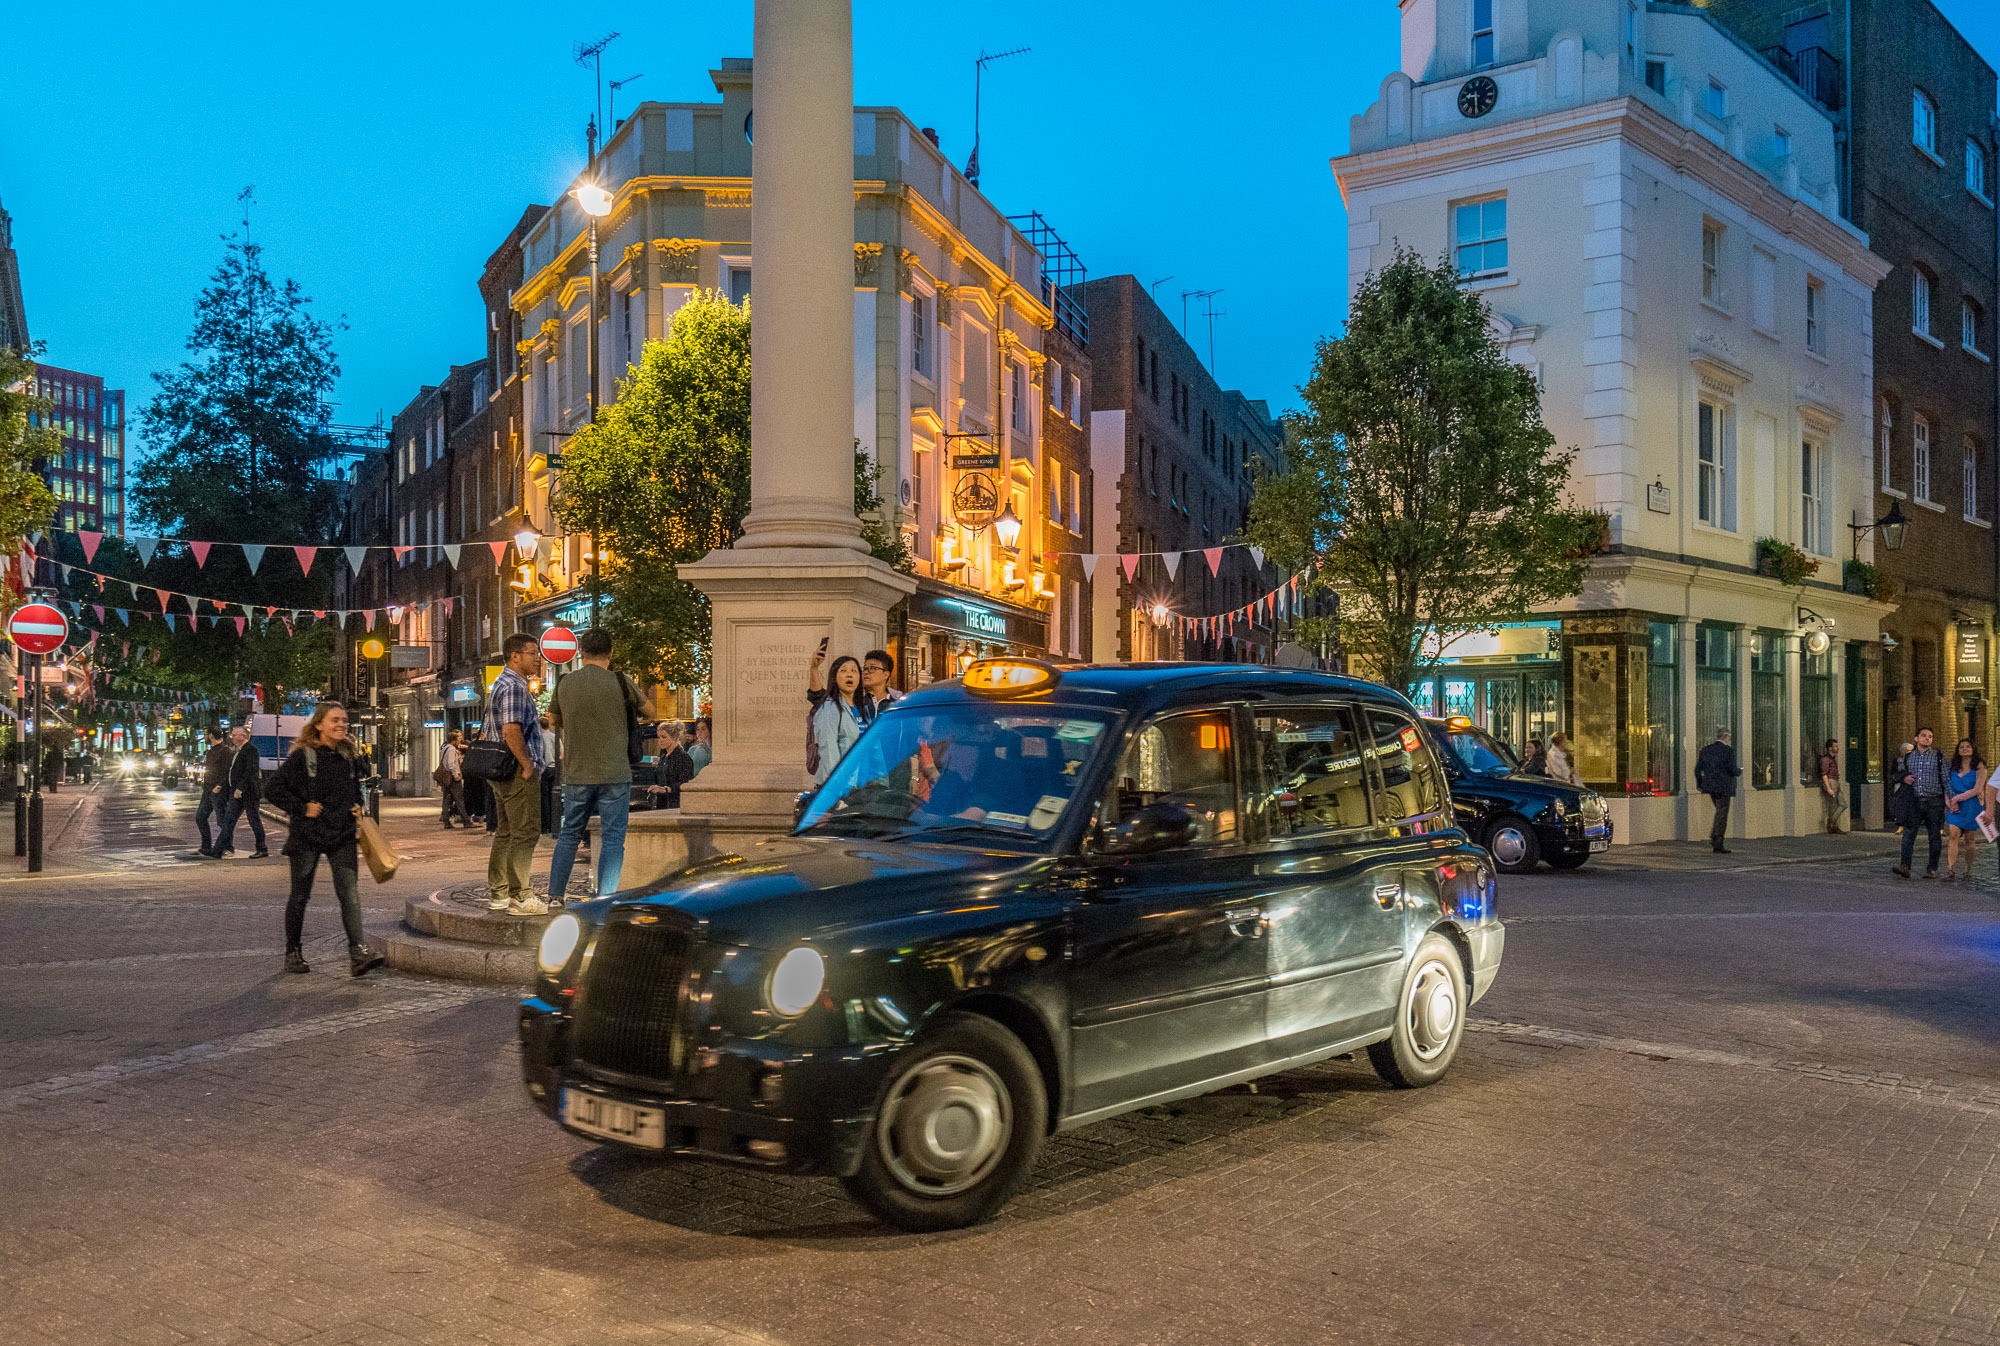 A London taxi in Covent Garden at night.